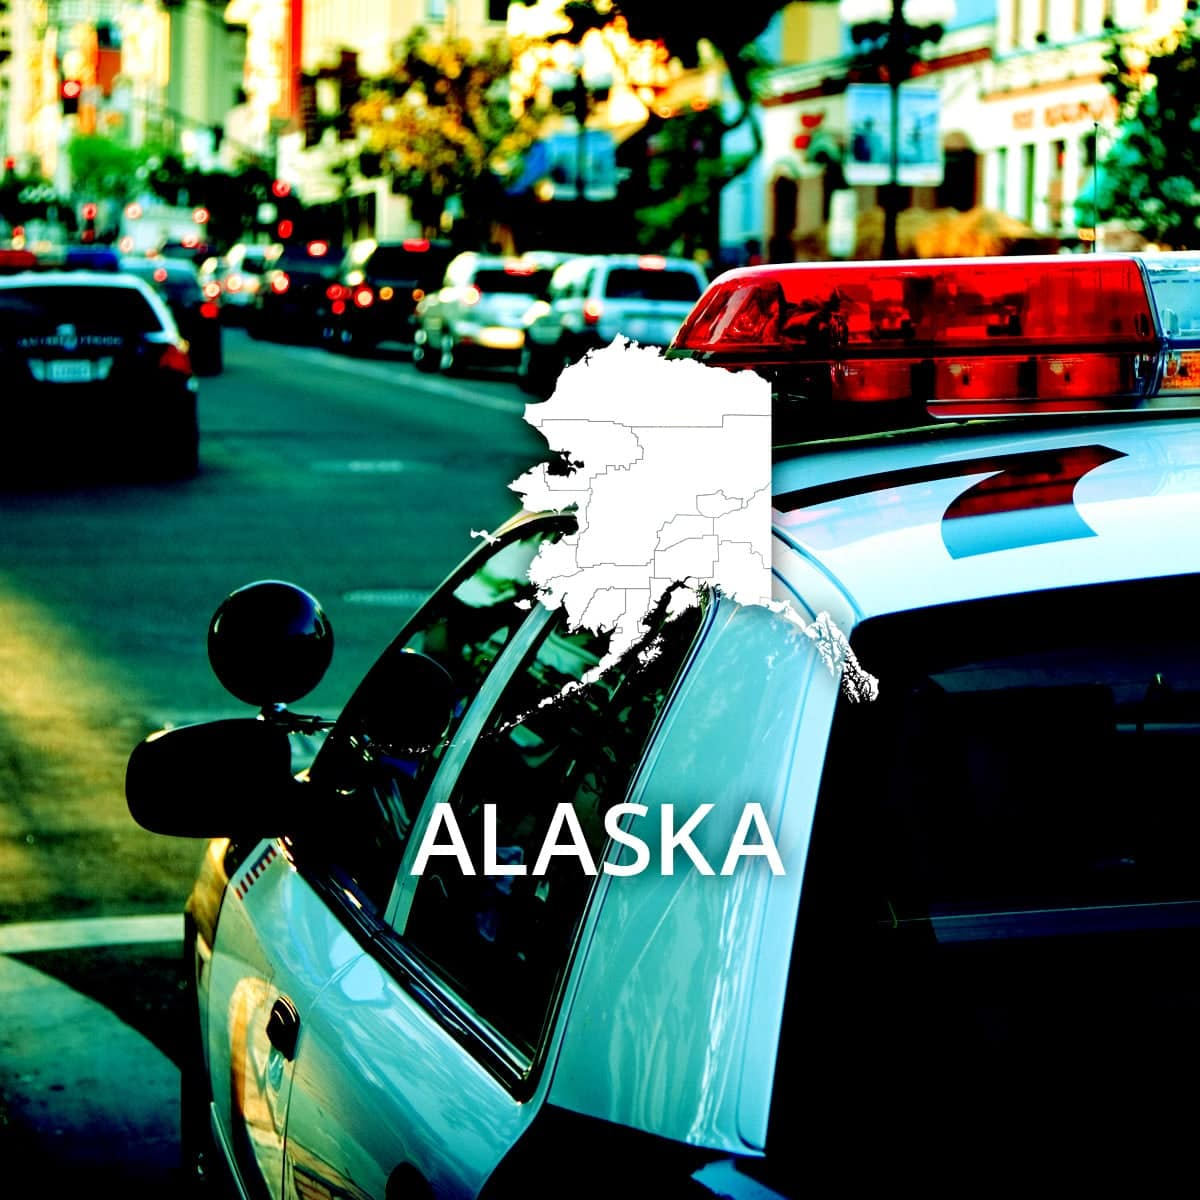 Alaska's law enforcement is comprised of three municipal police Departments: Anchorage, Fairbanks and Juneau. The Anchorage Police Department was ...